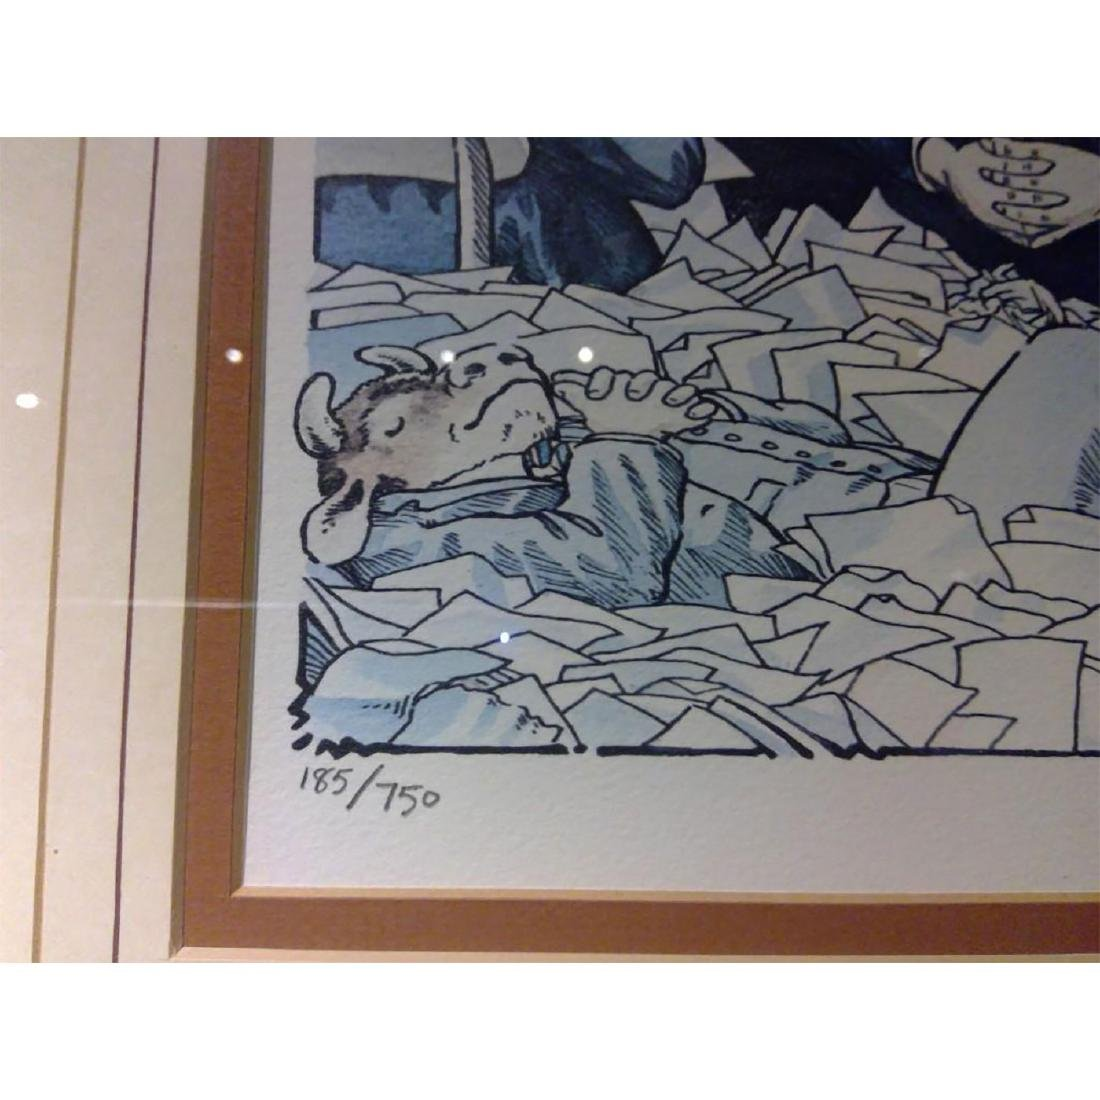 SET OF 2 SIGNED BOB FARNDON LIMITED EDITION LITHOGRAPHS - 10